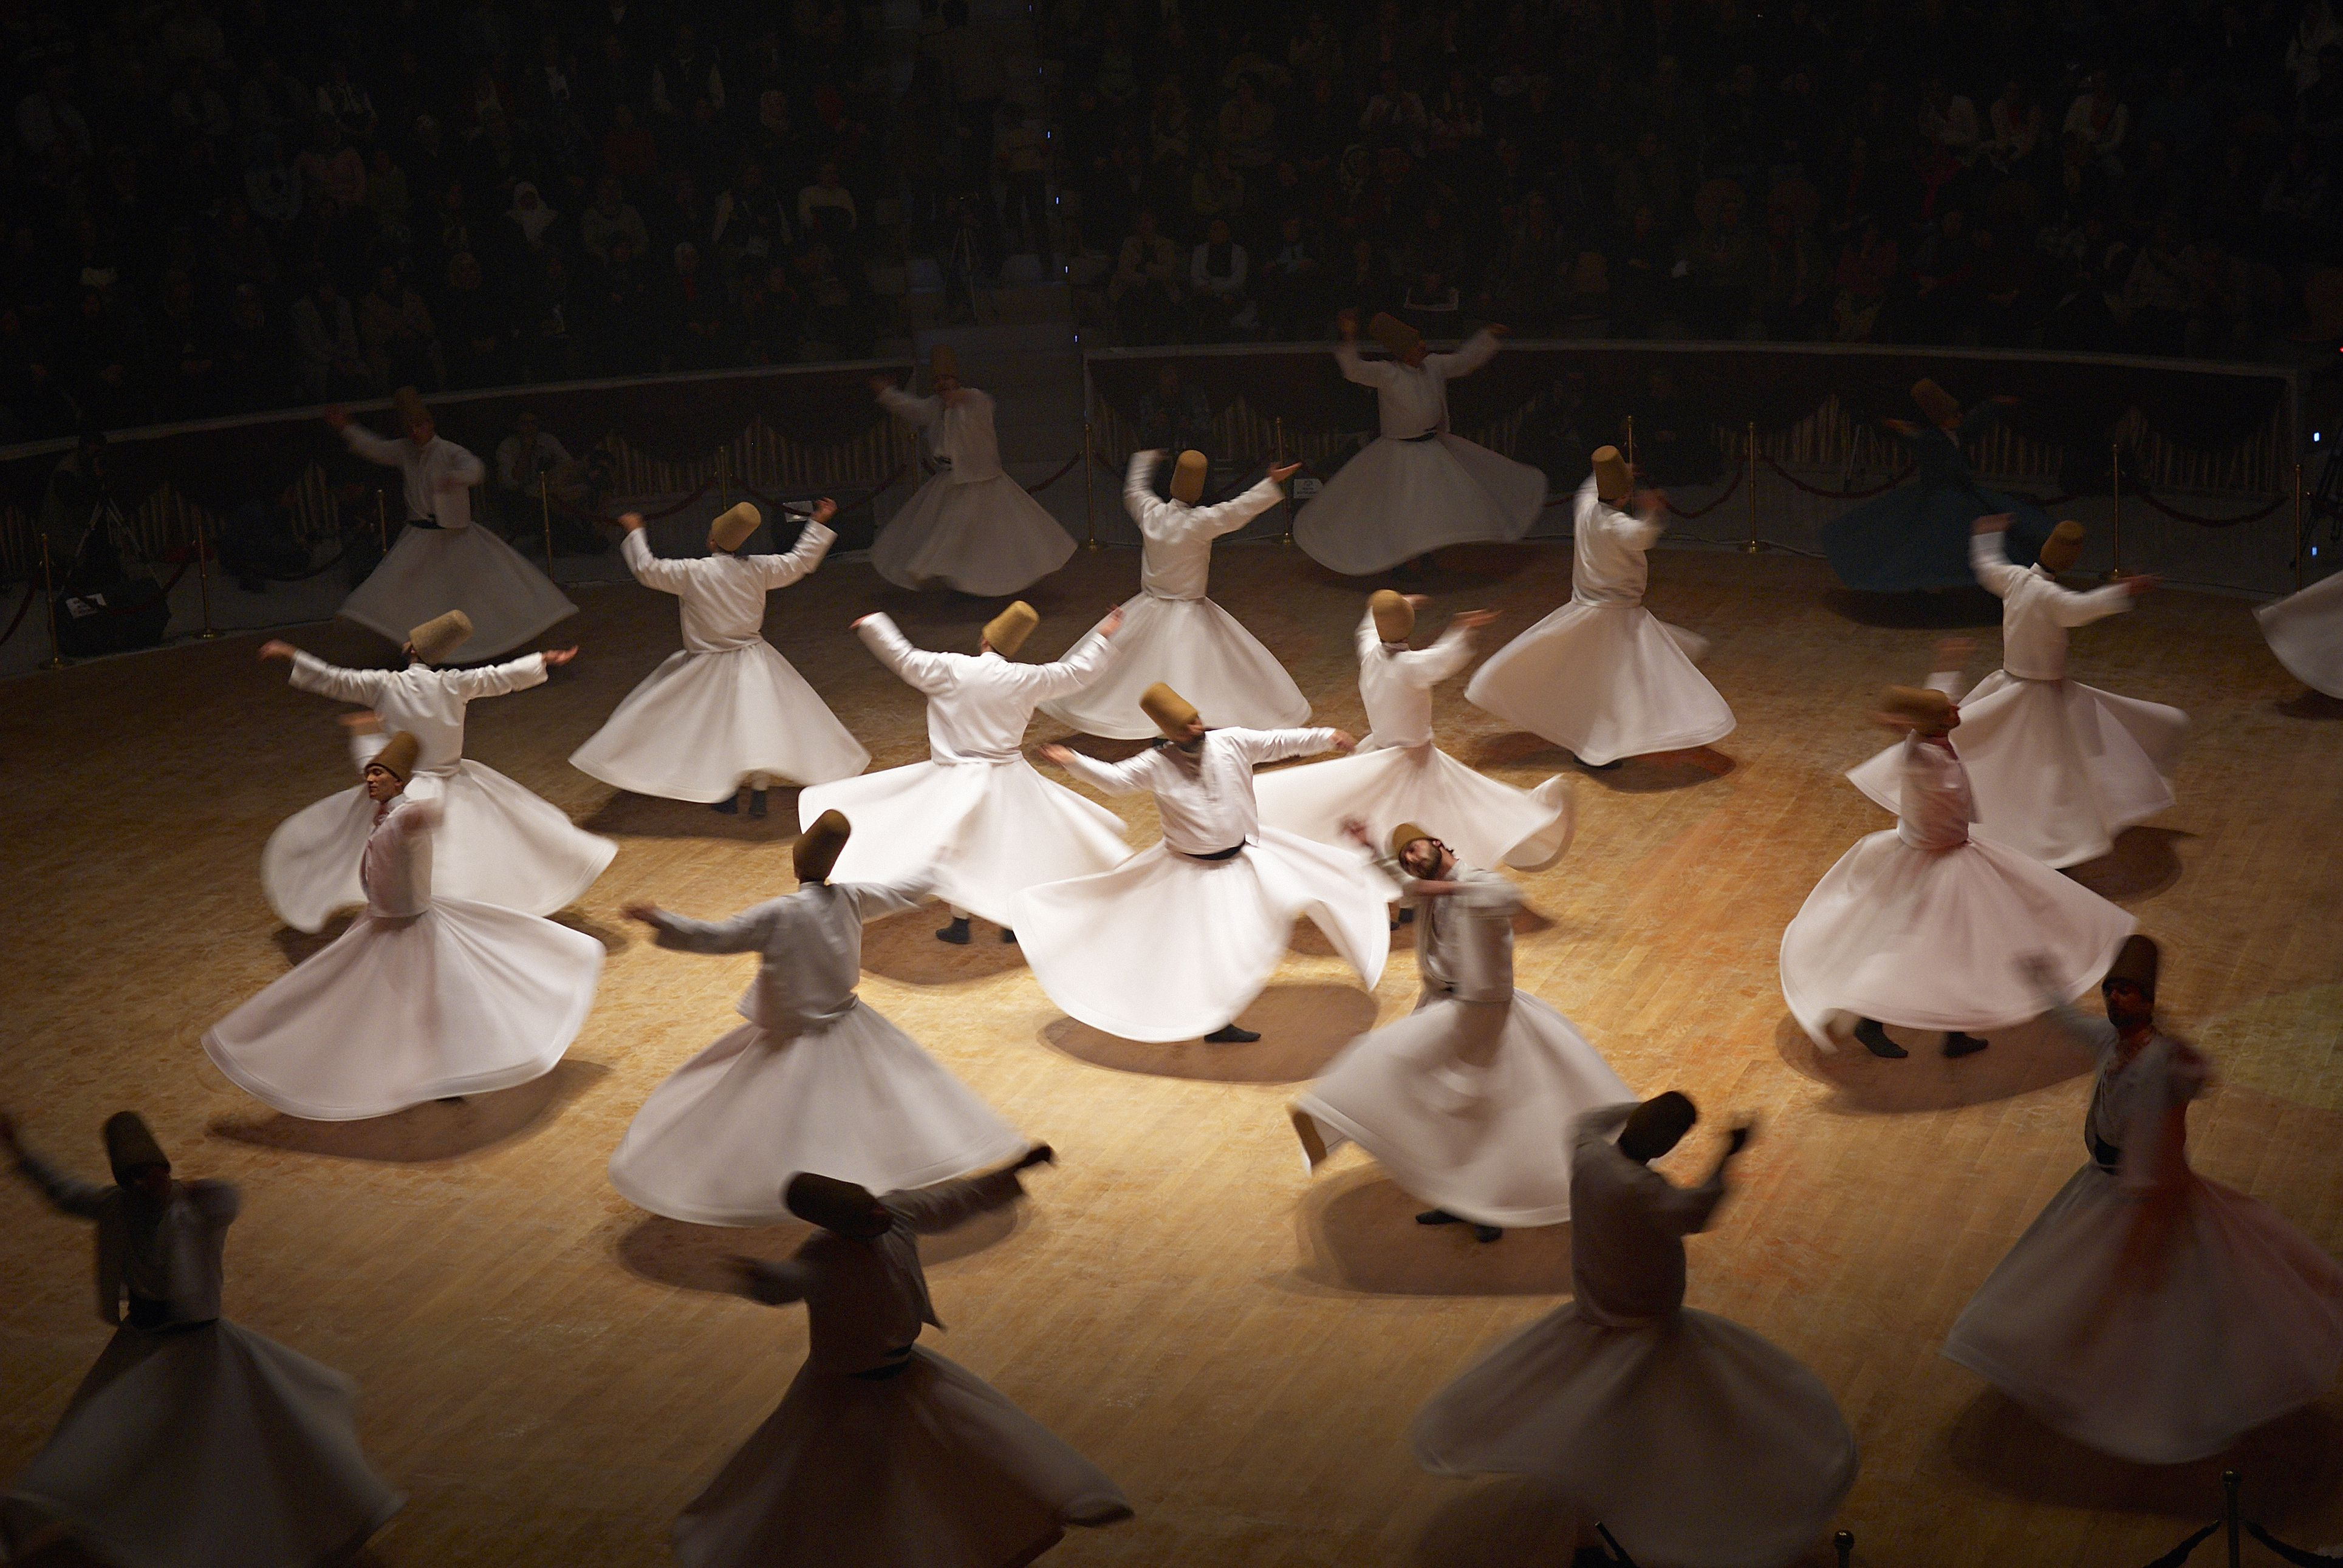 turkey  anatolia  konya  whirling dervishes  blurred motion  200505293 001 5b96c19c46e0fb0050fba526 Sufismo: A religião mística do Islã que foi pioneira do haxixe e do café